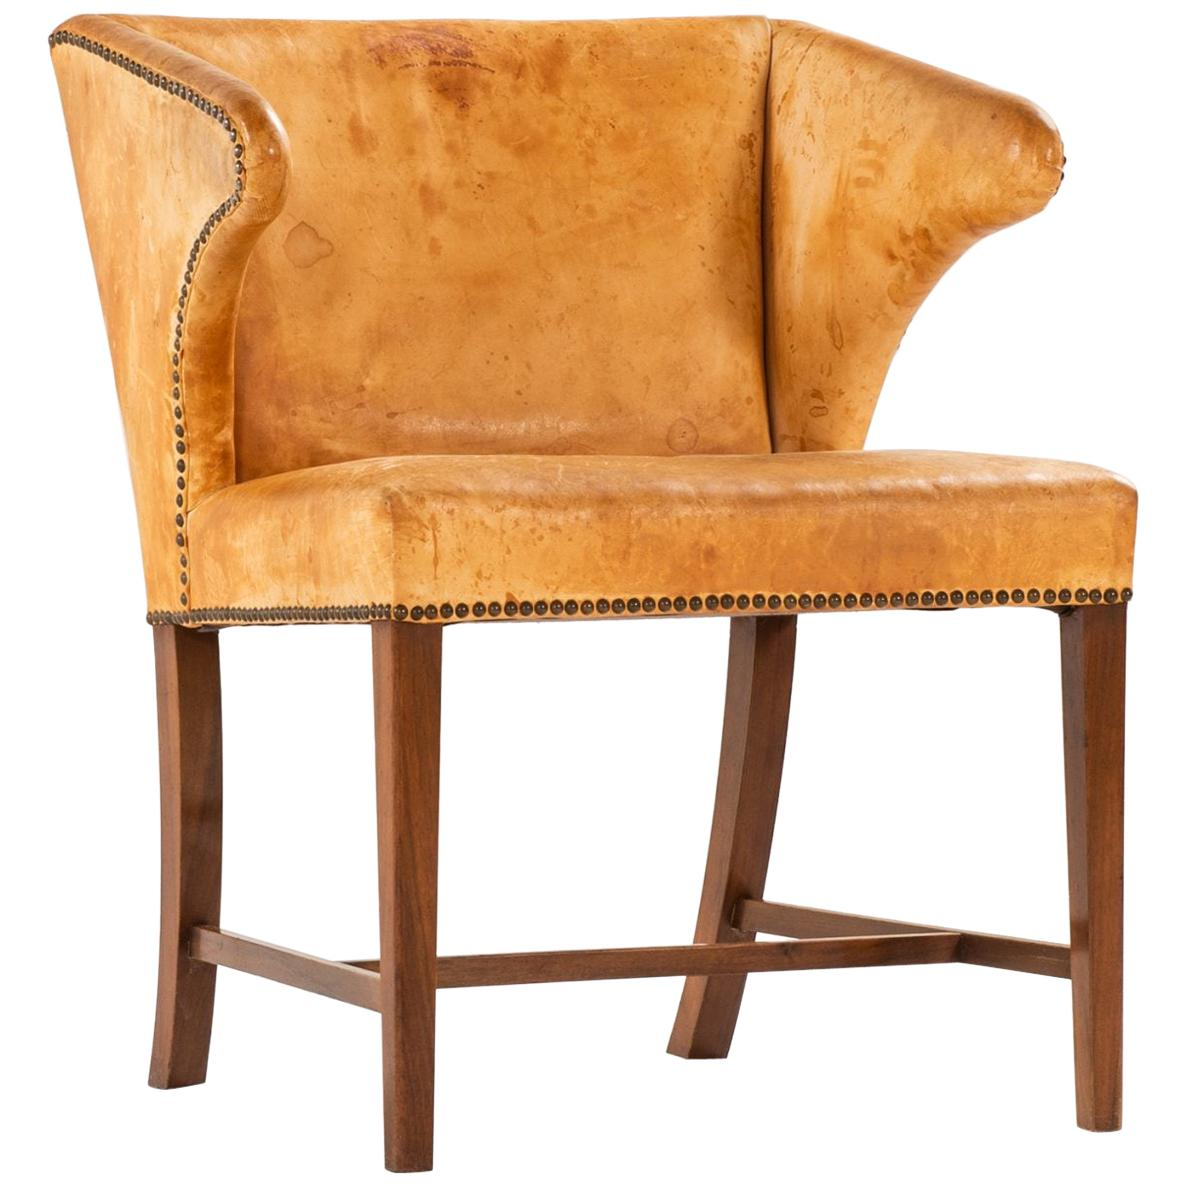 Armchair Attributed to Frits Henningsen by cabinetmaker Frits Henningsen